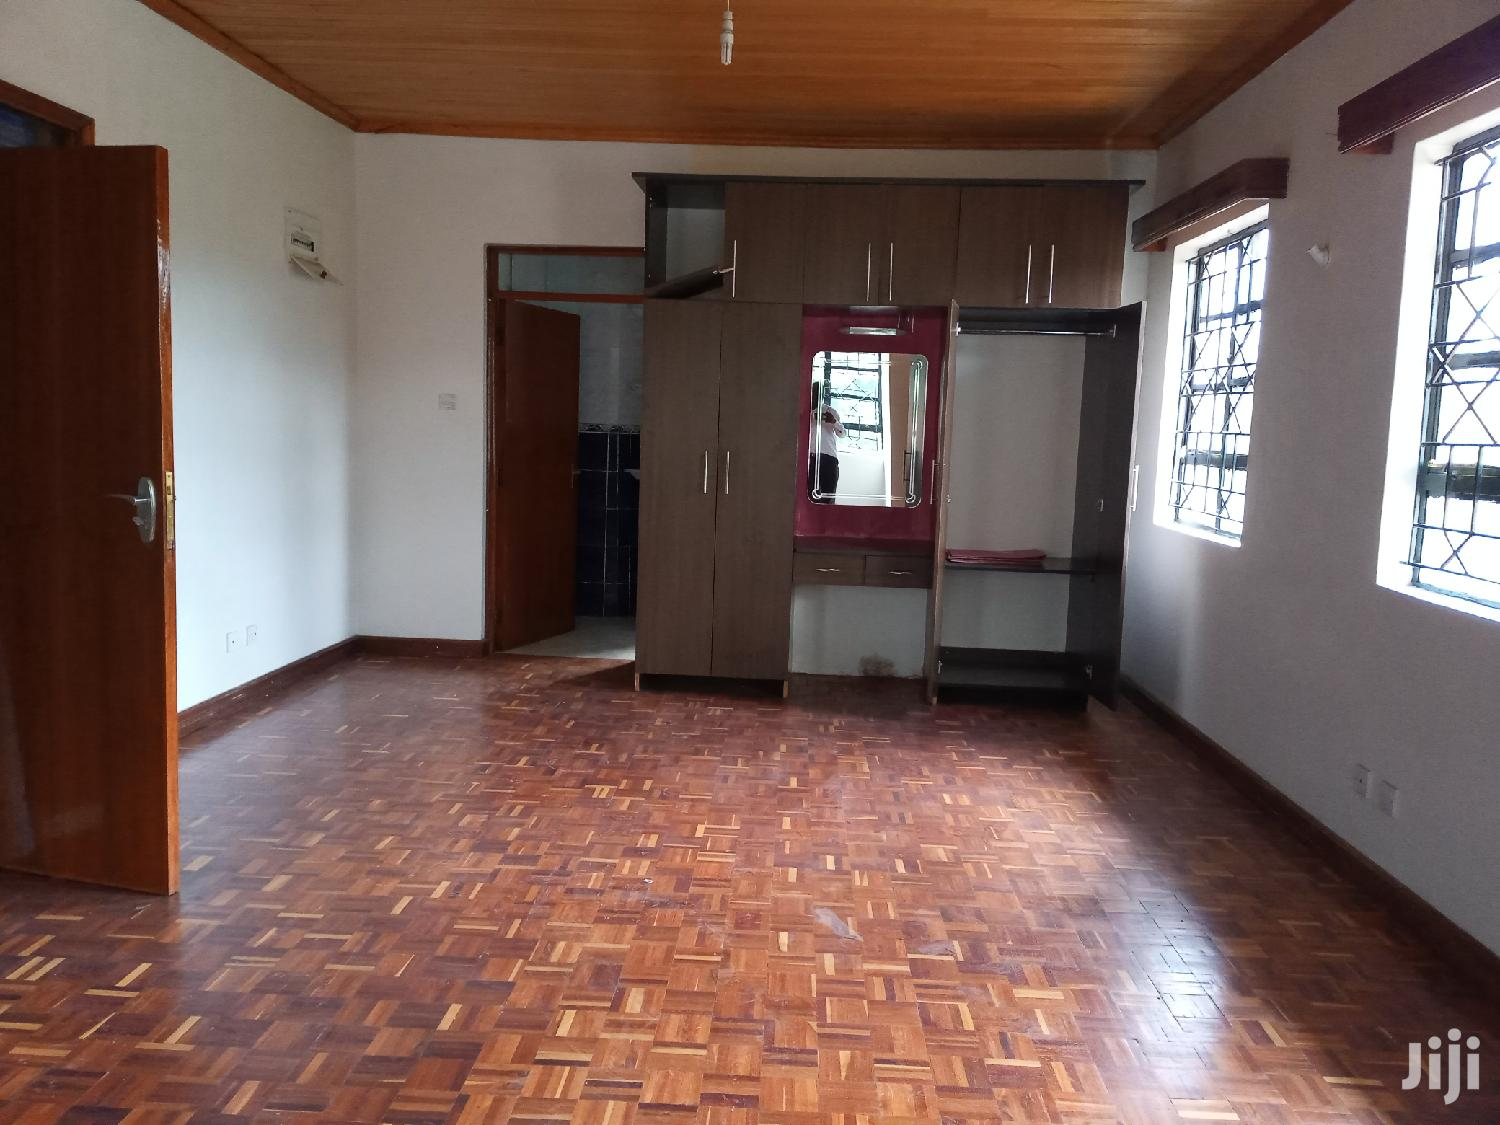 House To Let 5bedroom Mansionetter | Houses & Apartments For Rent for sale in Embakasi, Nairobi, Kenya